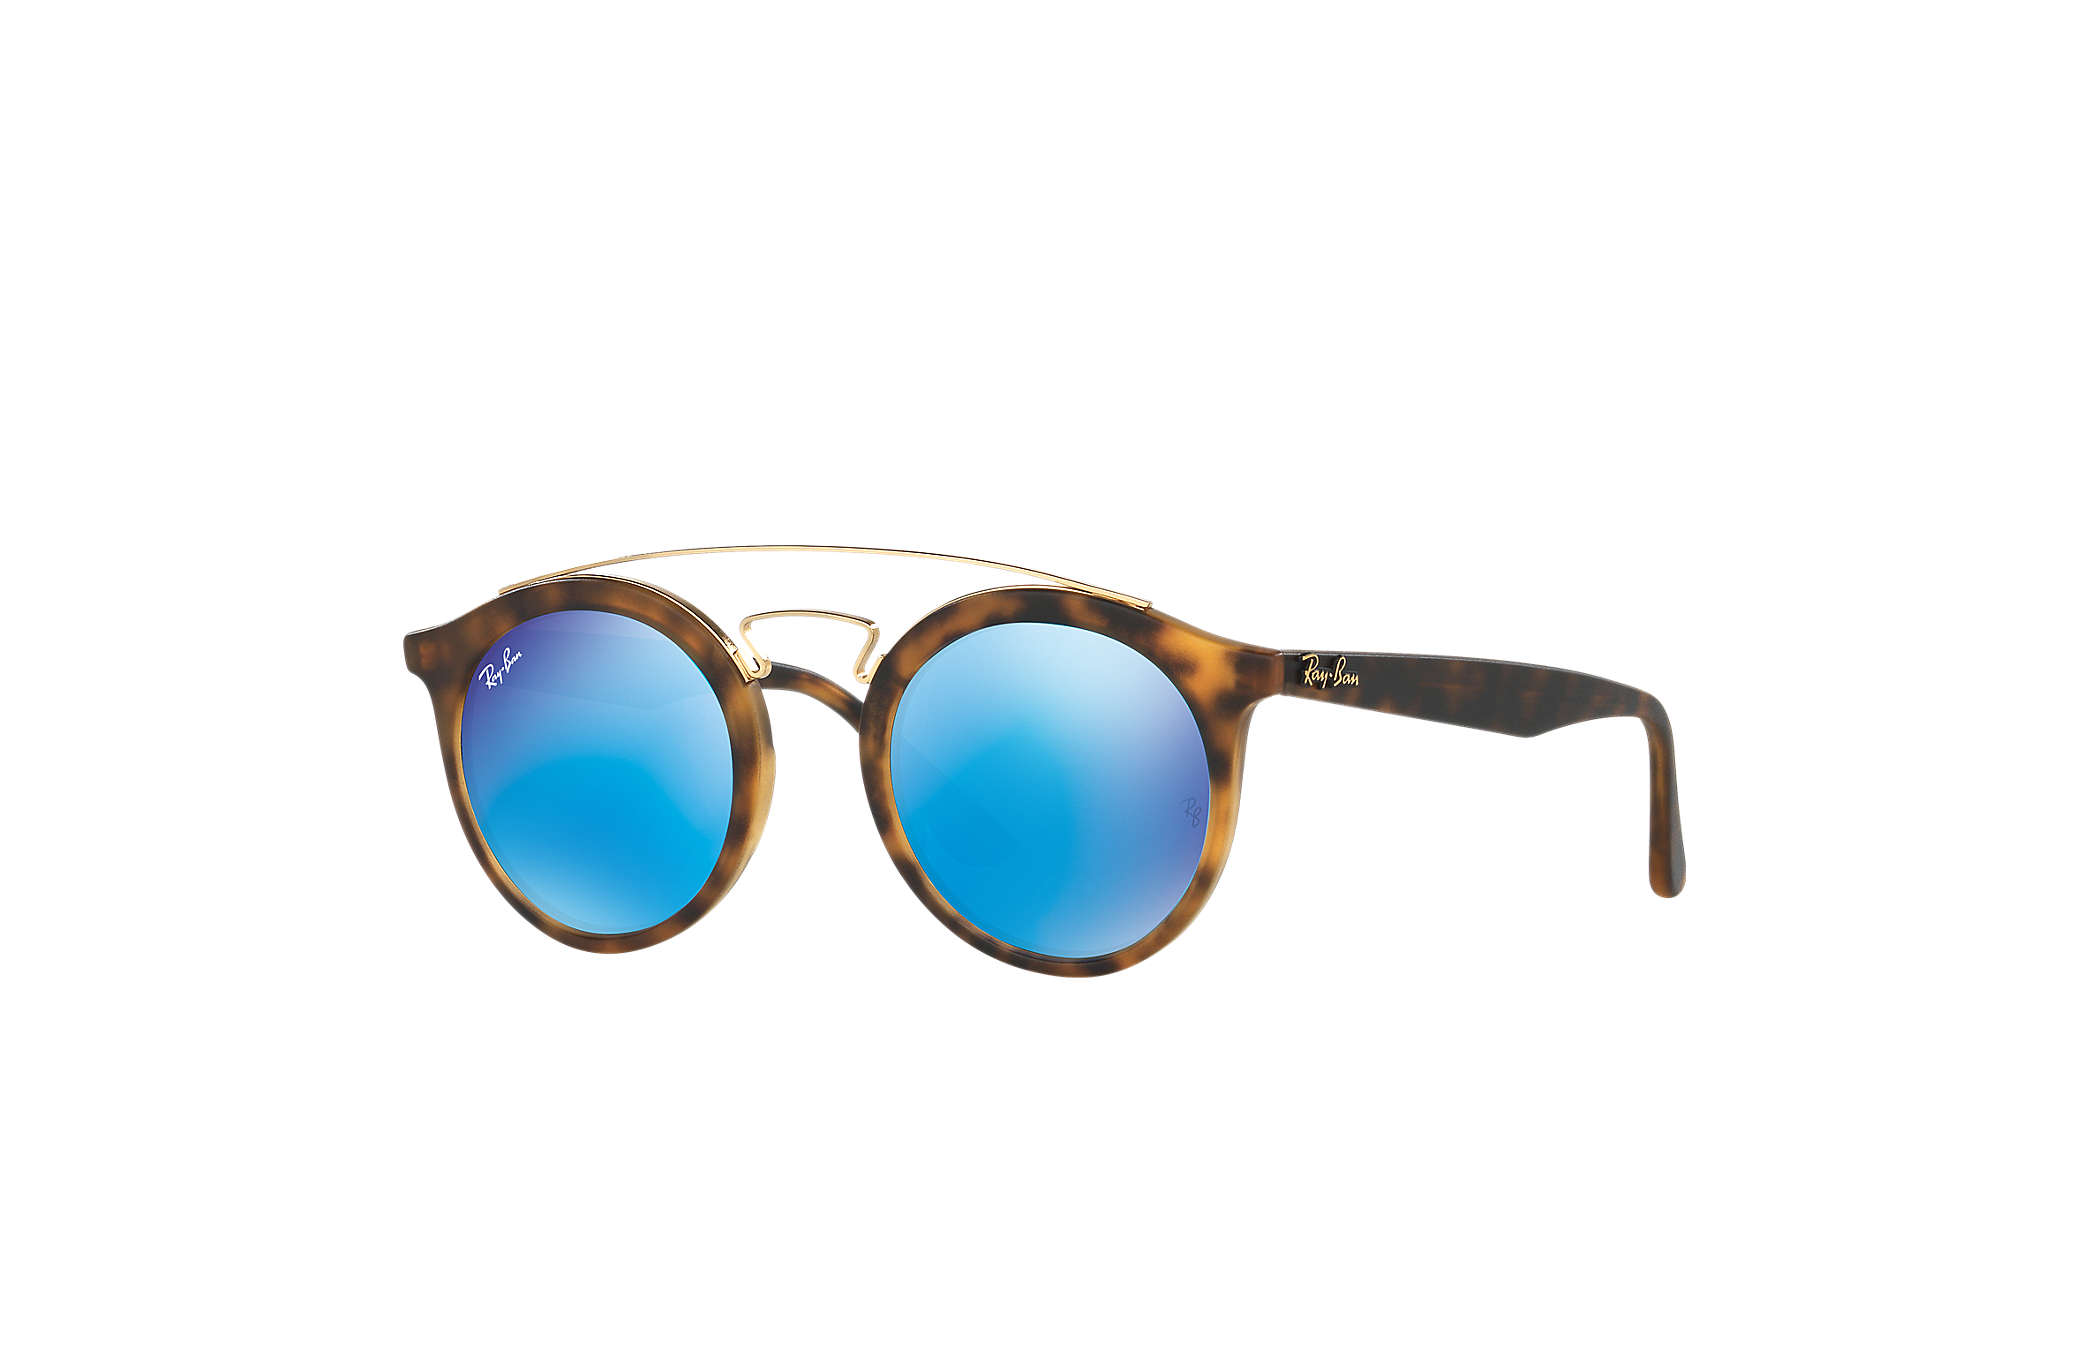 1a84f16ed42 Check out the Rb4256 Gatsby I at ray-ban.com